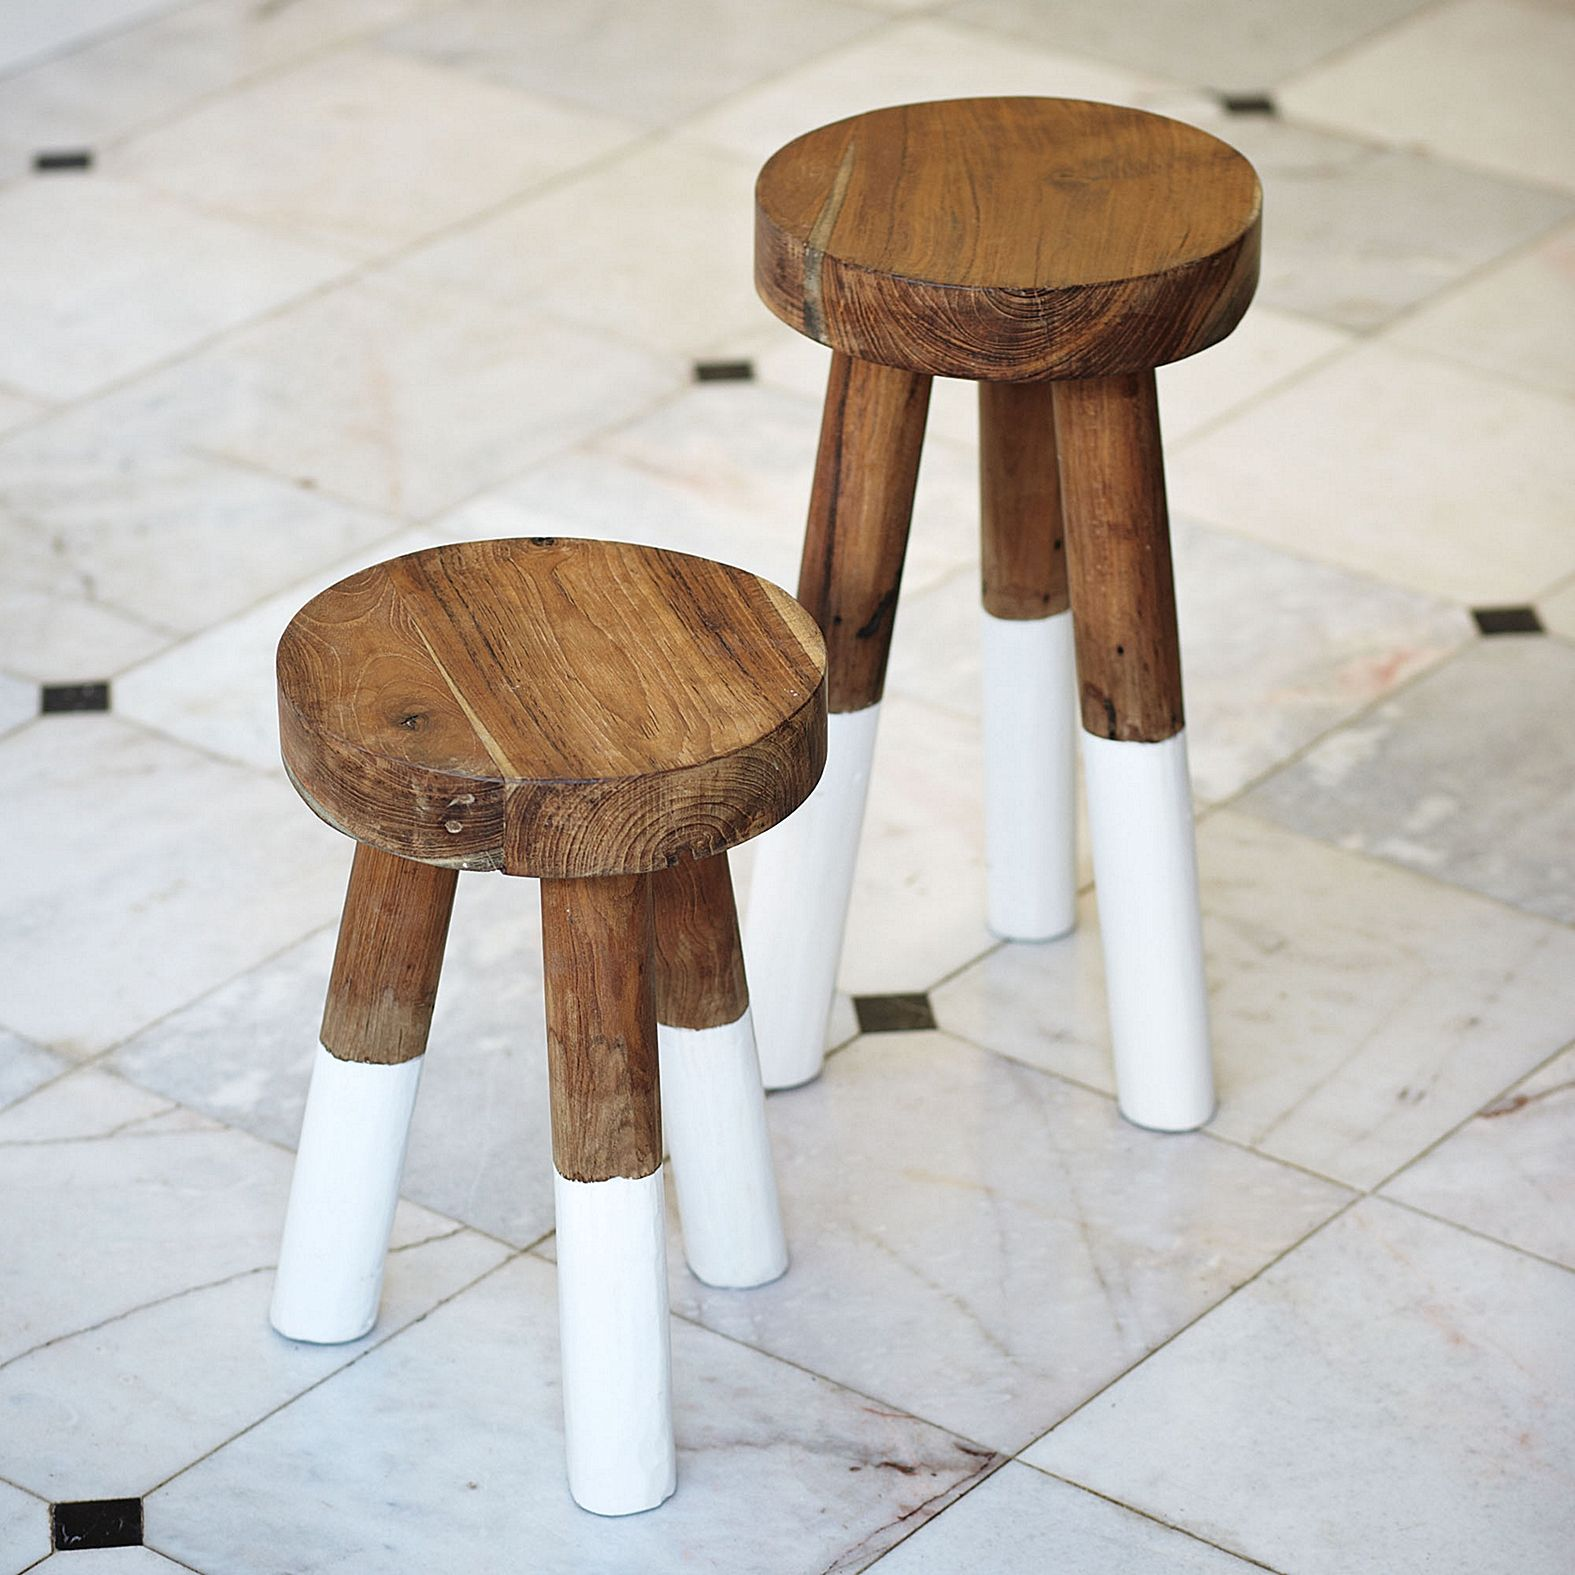 Astounding Dip Dyed Stools Serena Lily Paint Dipping Stool Gmtry Best Dining Table And Chair Ideas Images Gmtryco